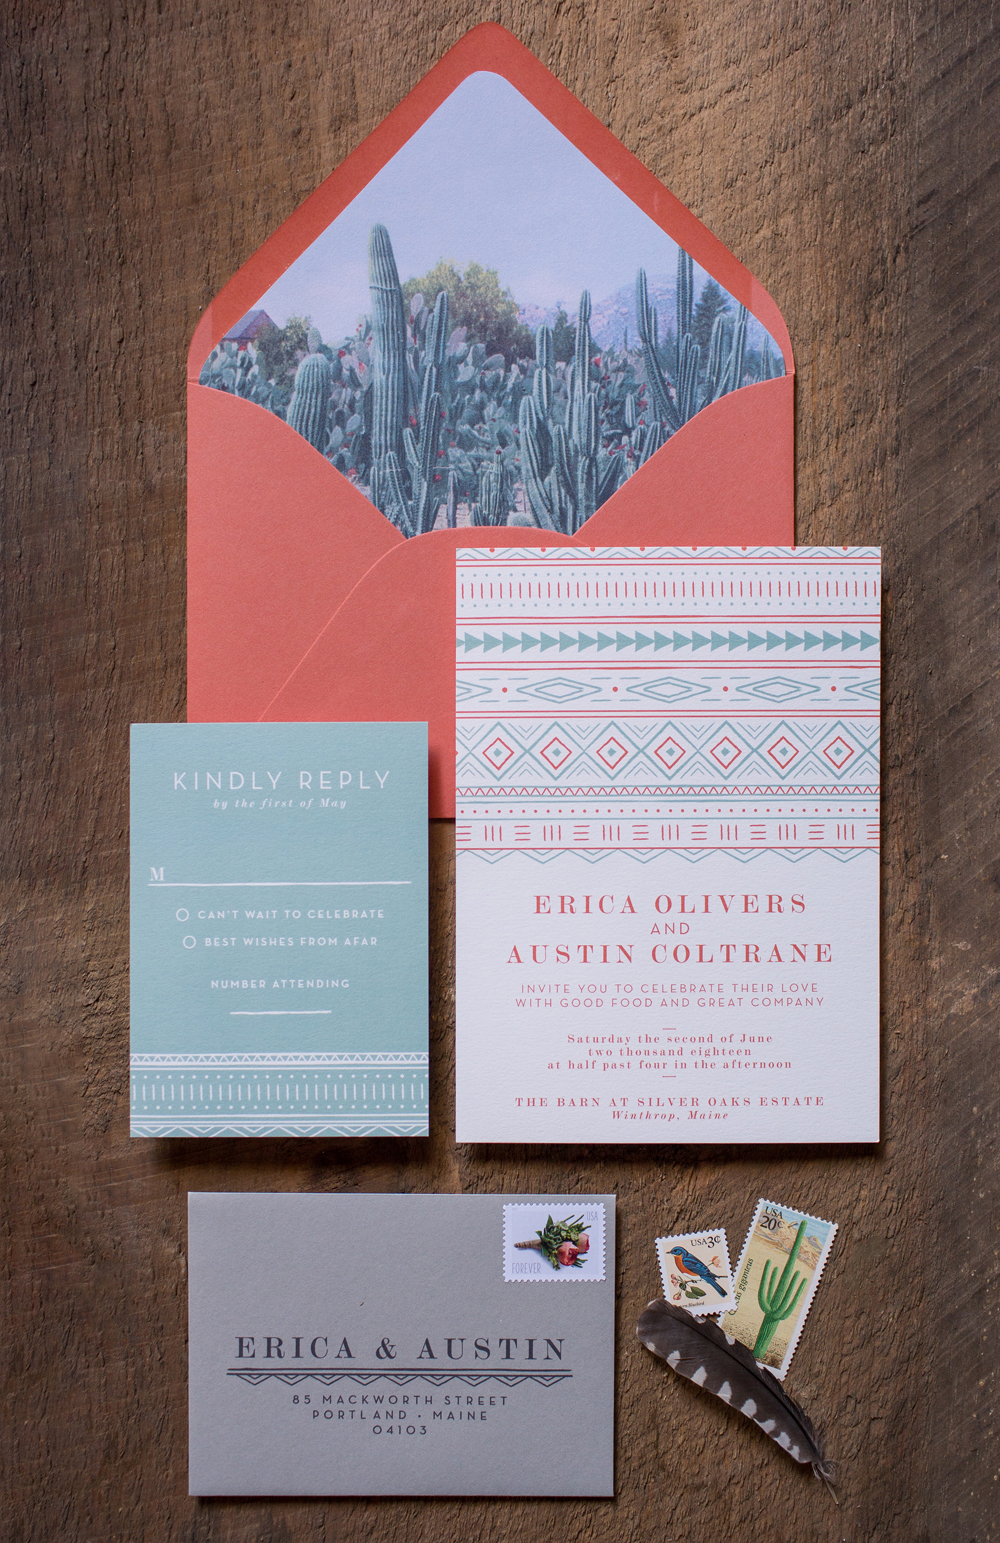 custom made wedding invitation suite inspired by cacti and the desert, boho bride invitations